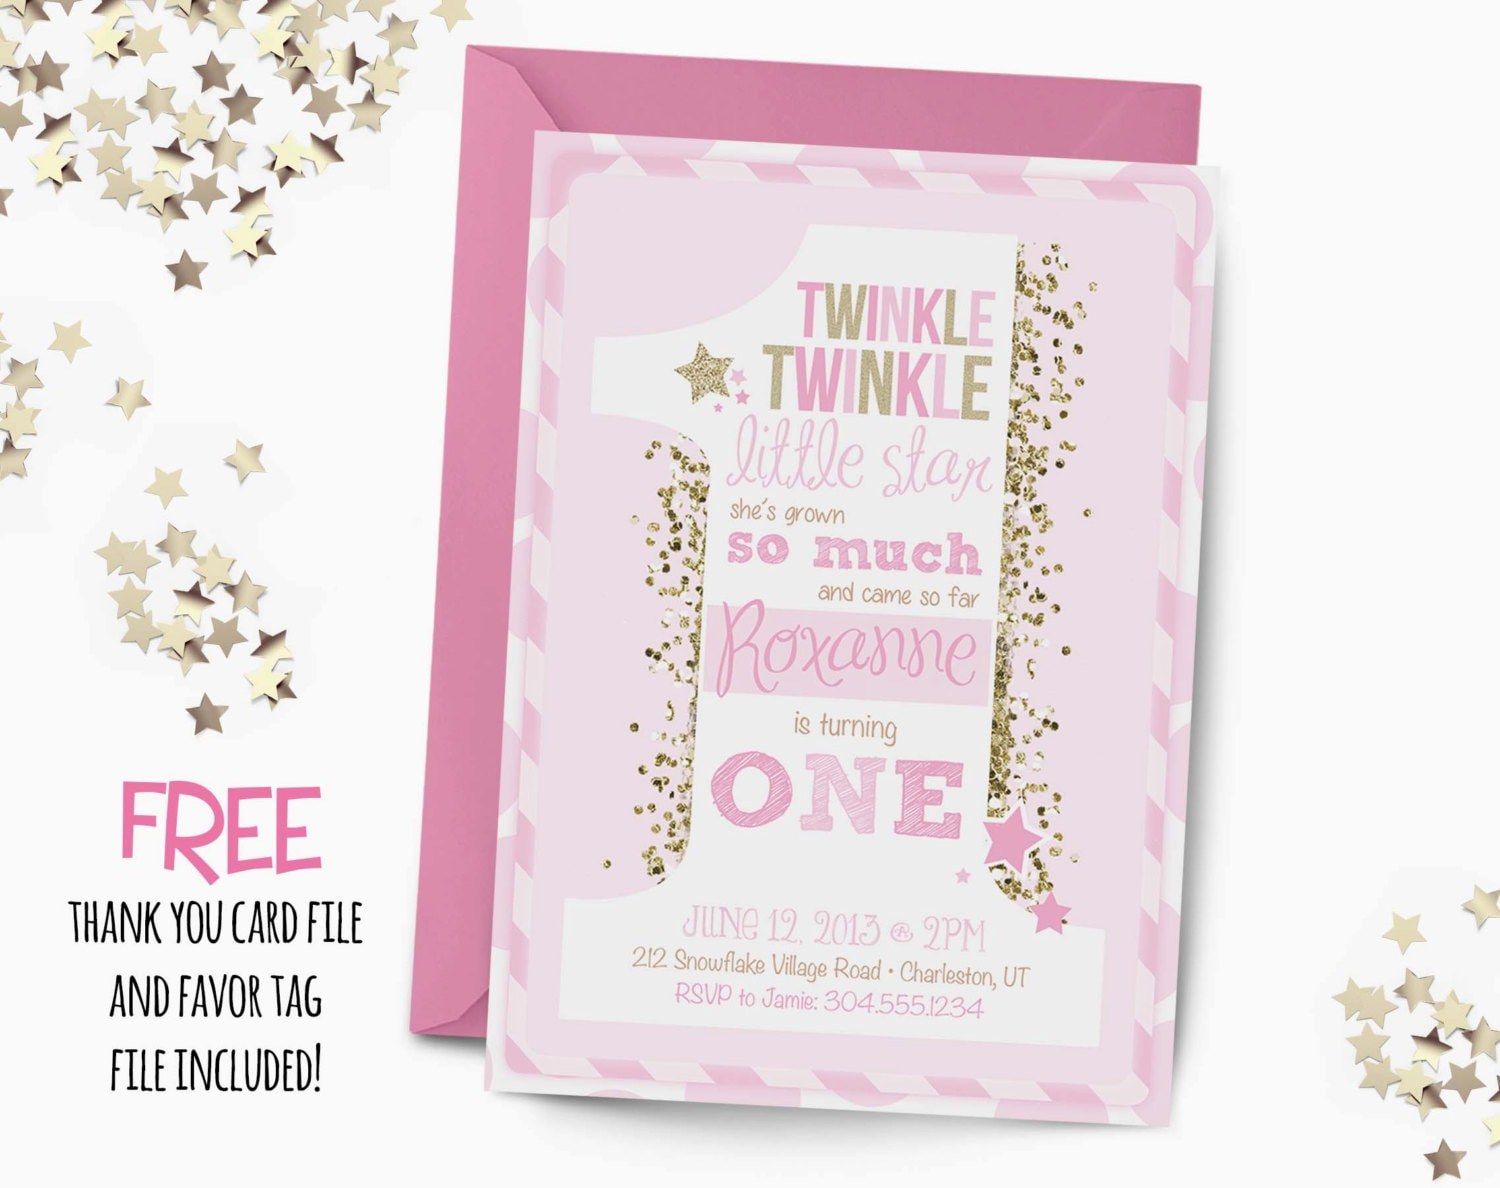 Twinkle Little Star Birthday Invitations for best invitation sample